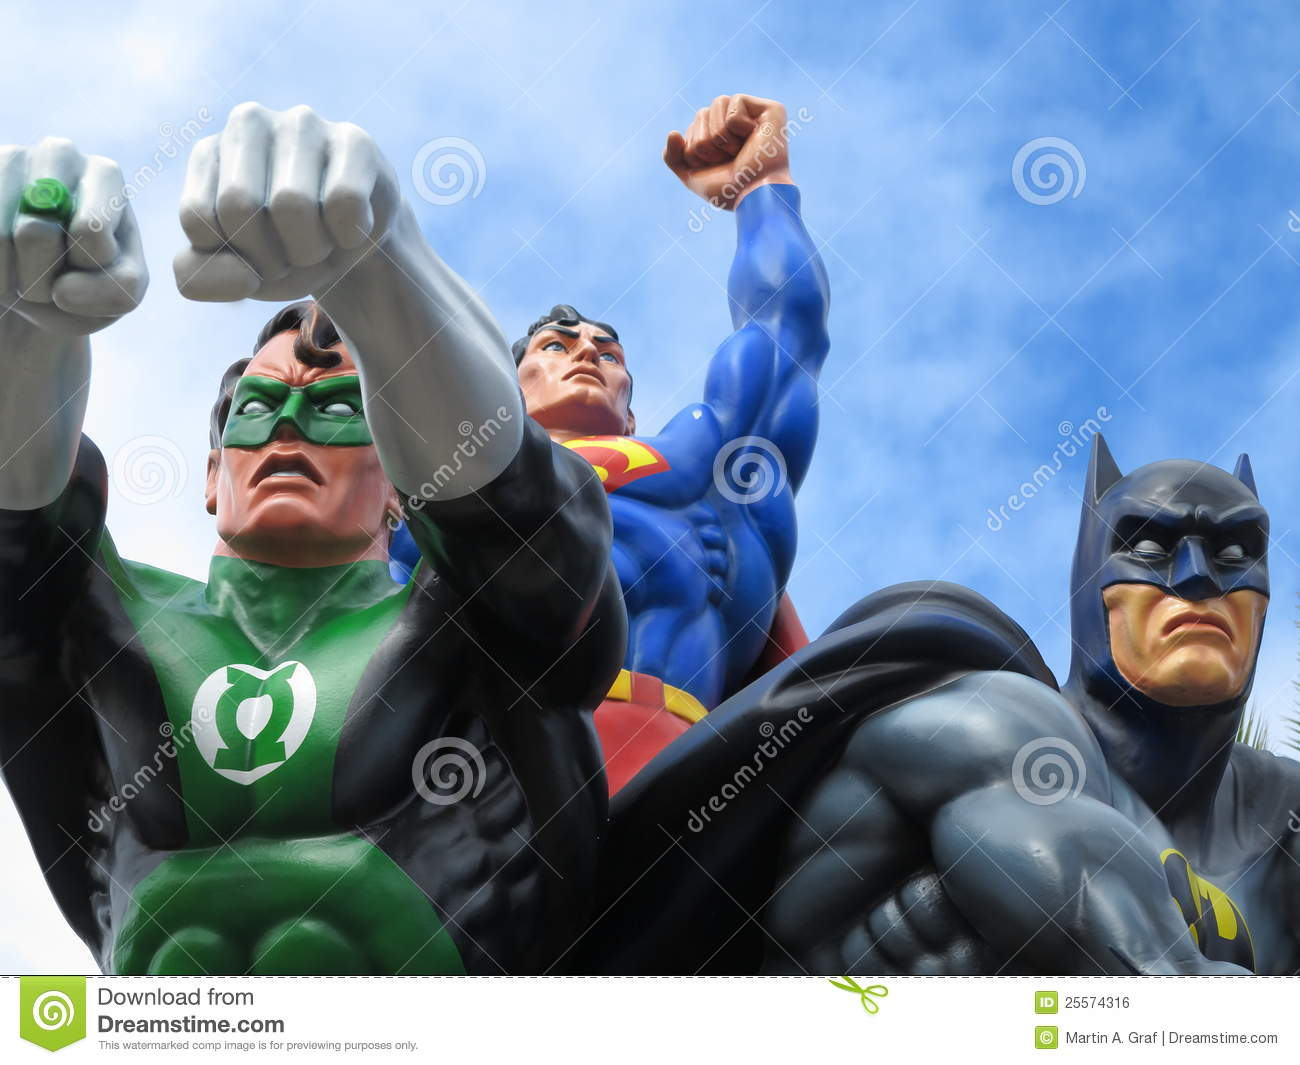 Green Lantern, Superman and Batman